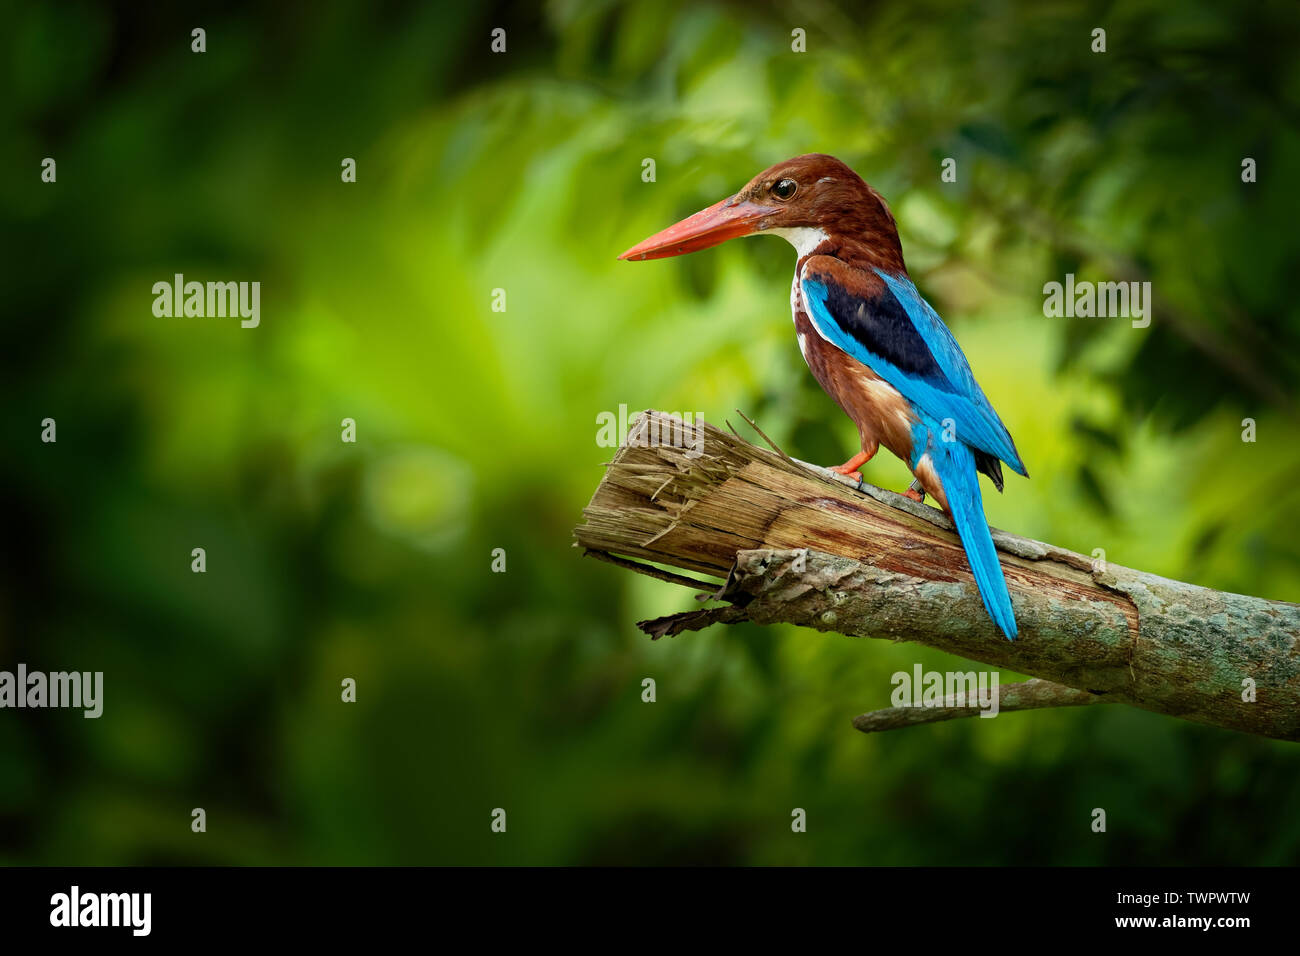 White-throated Kingfisher Halcyon smyrnensis on the branch, also known as the white-breasted kingfisher,  tree kingfisher, distributed in Asia from Tu - Stock Image